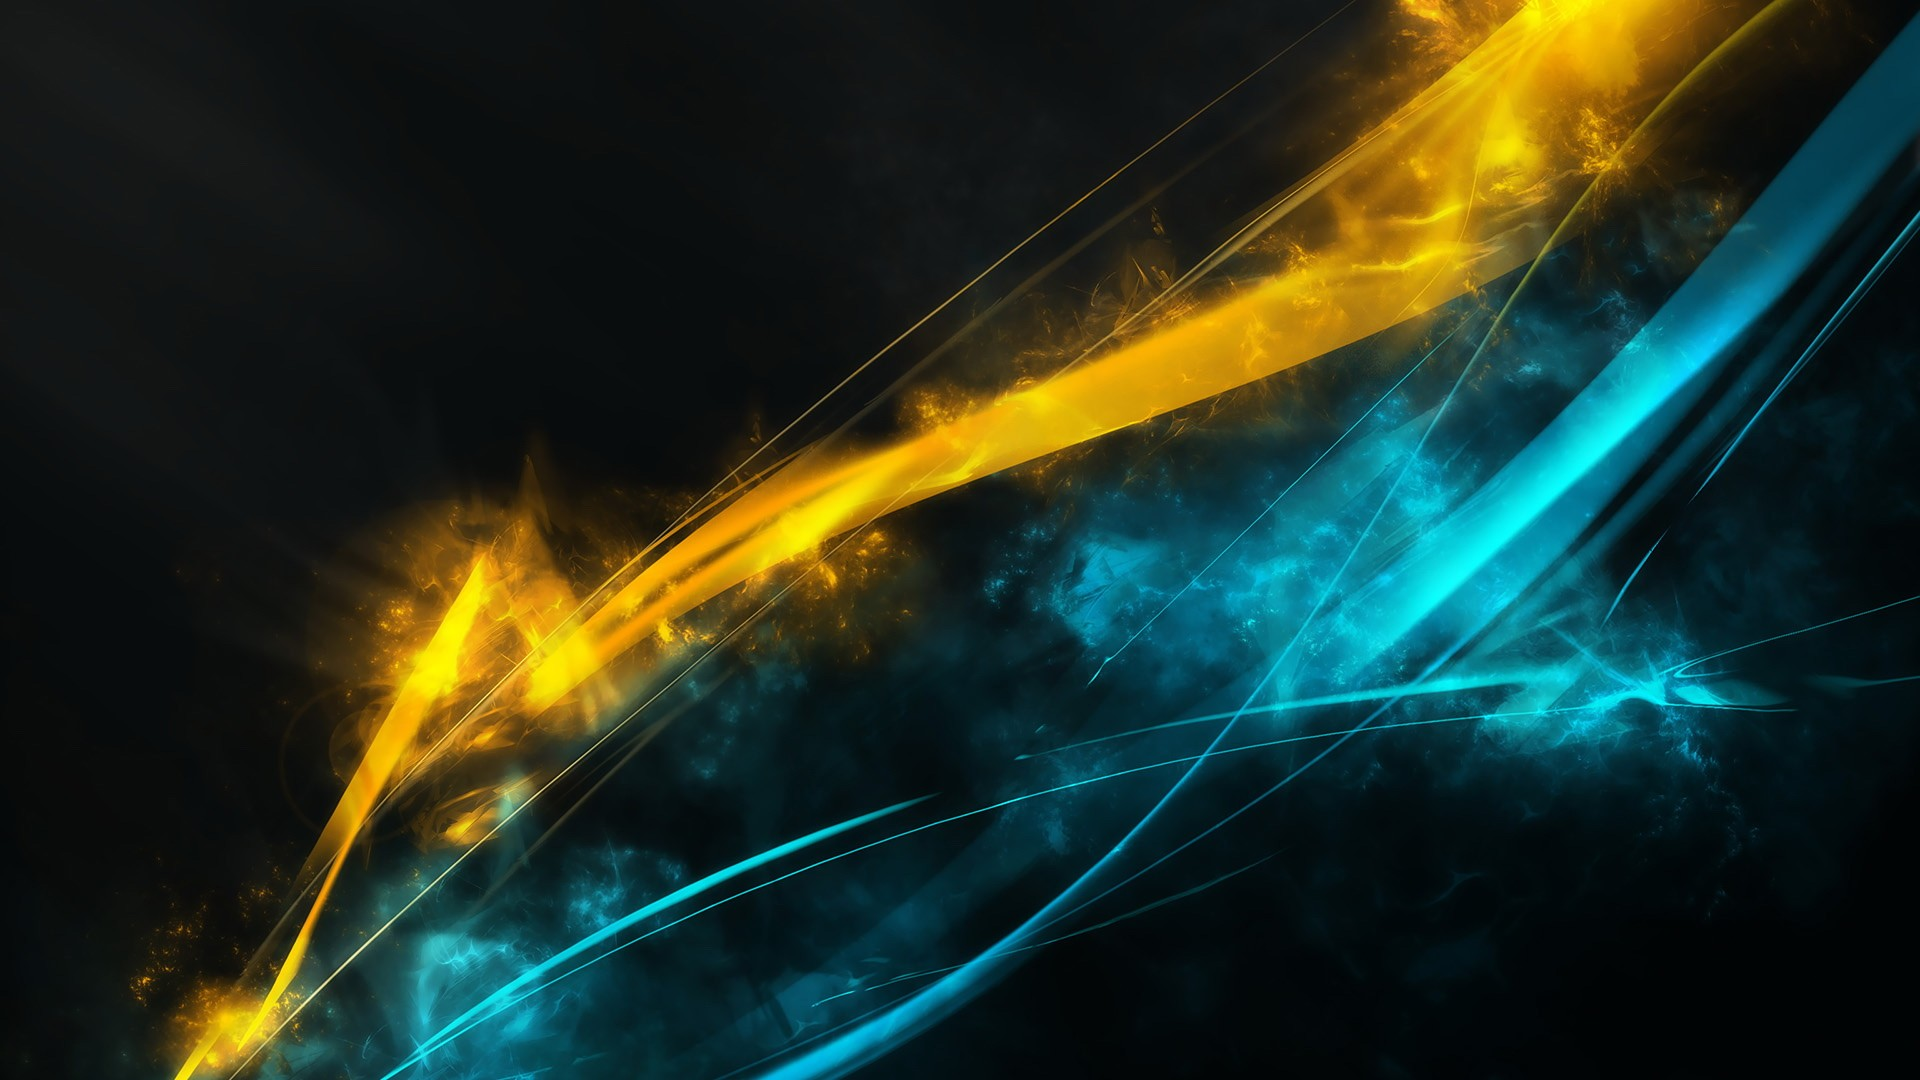 Collection of Abstract Hd Wallpaper on HDWallpapers